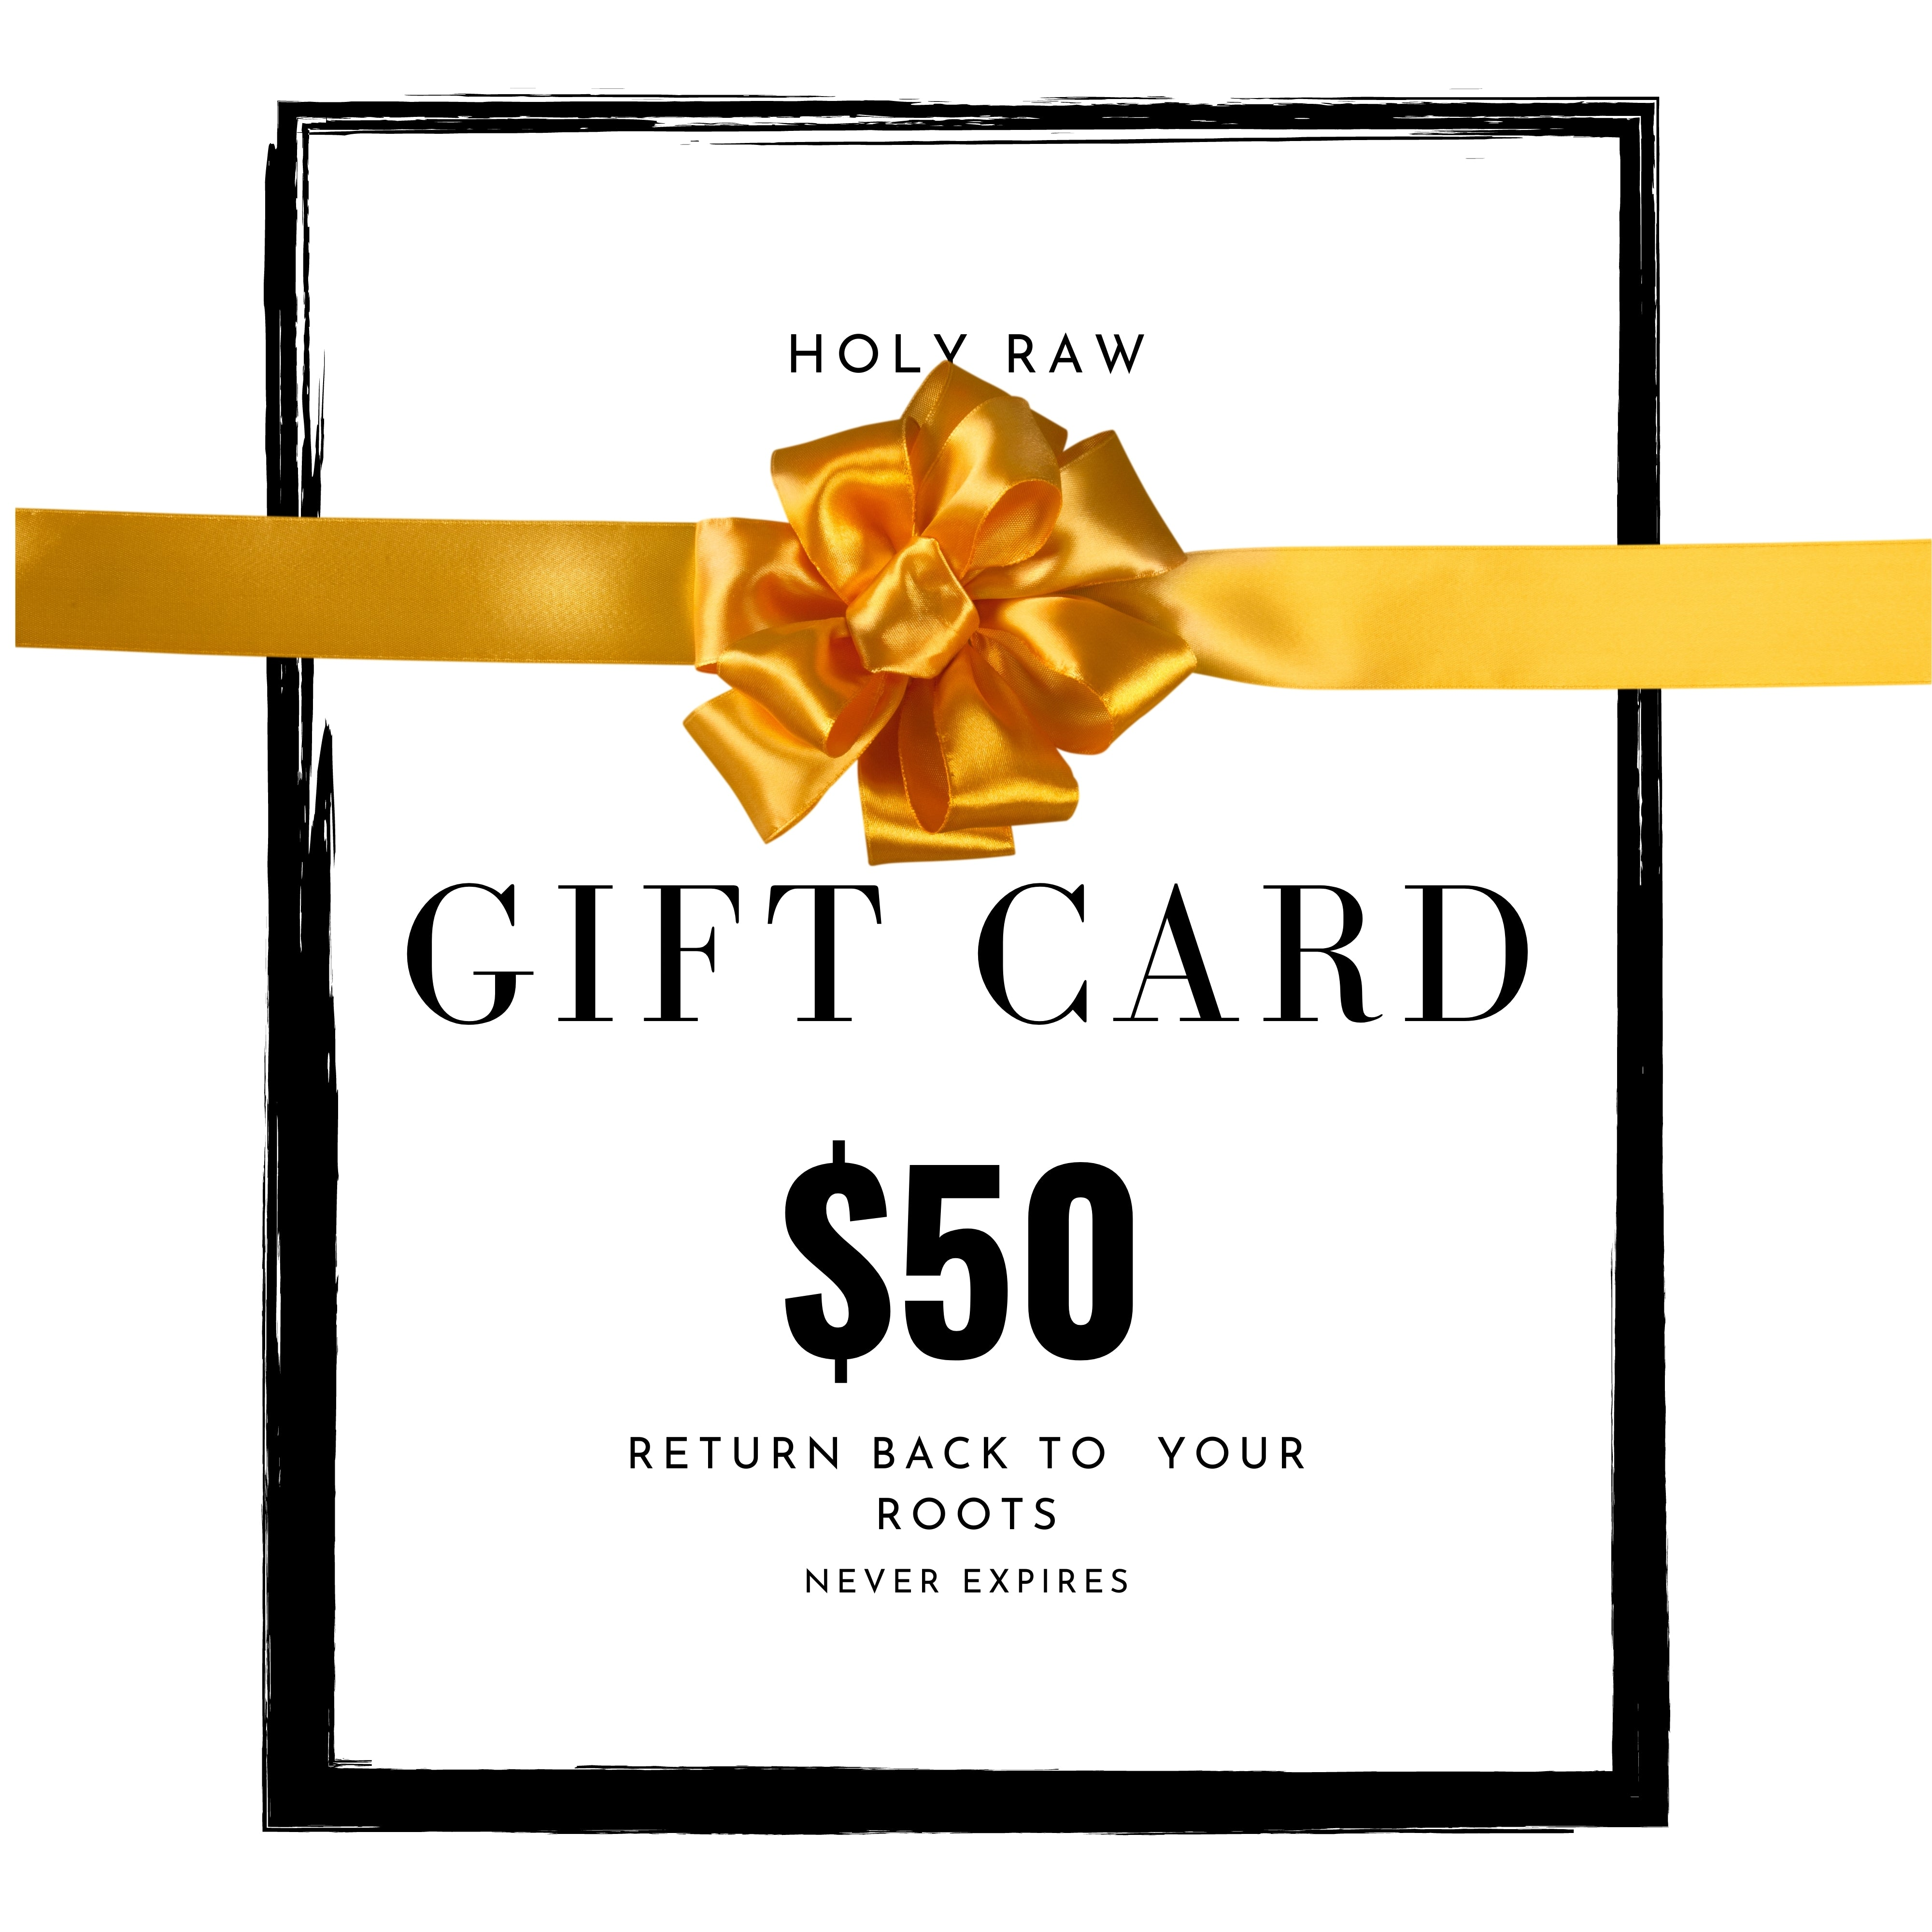 Holy Raw Gift Card